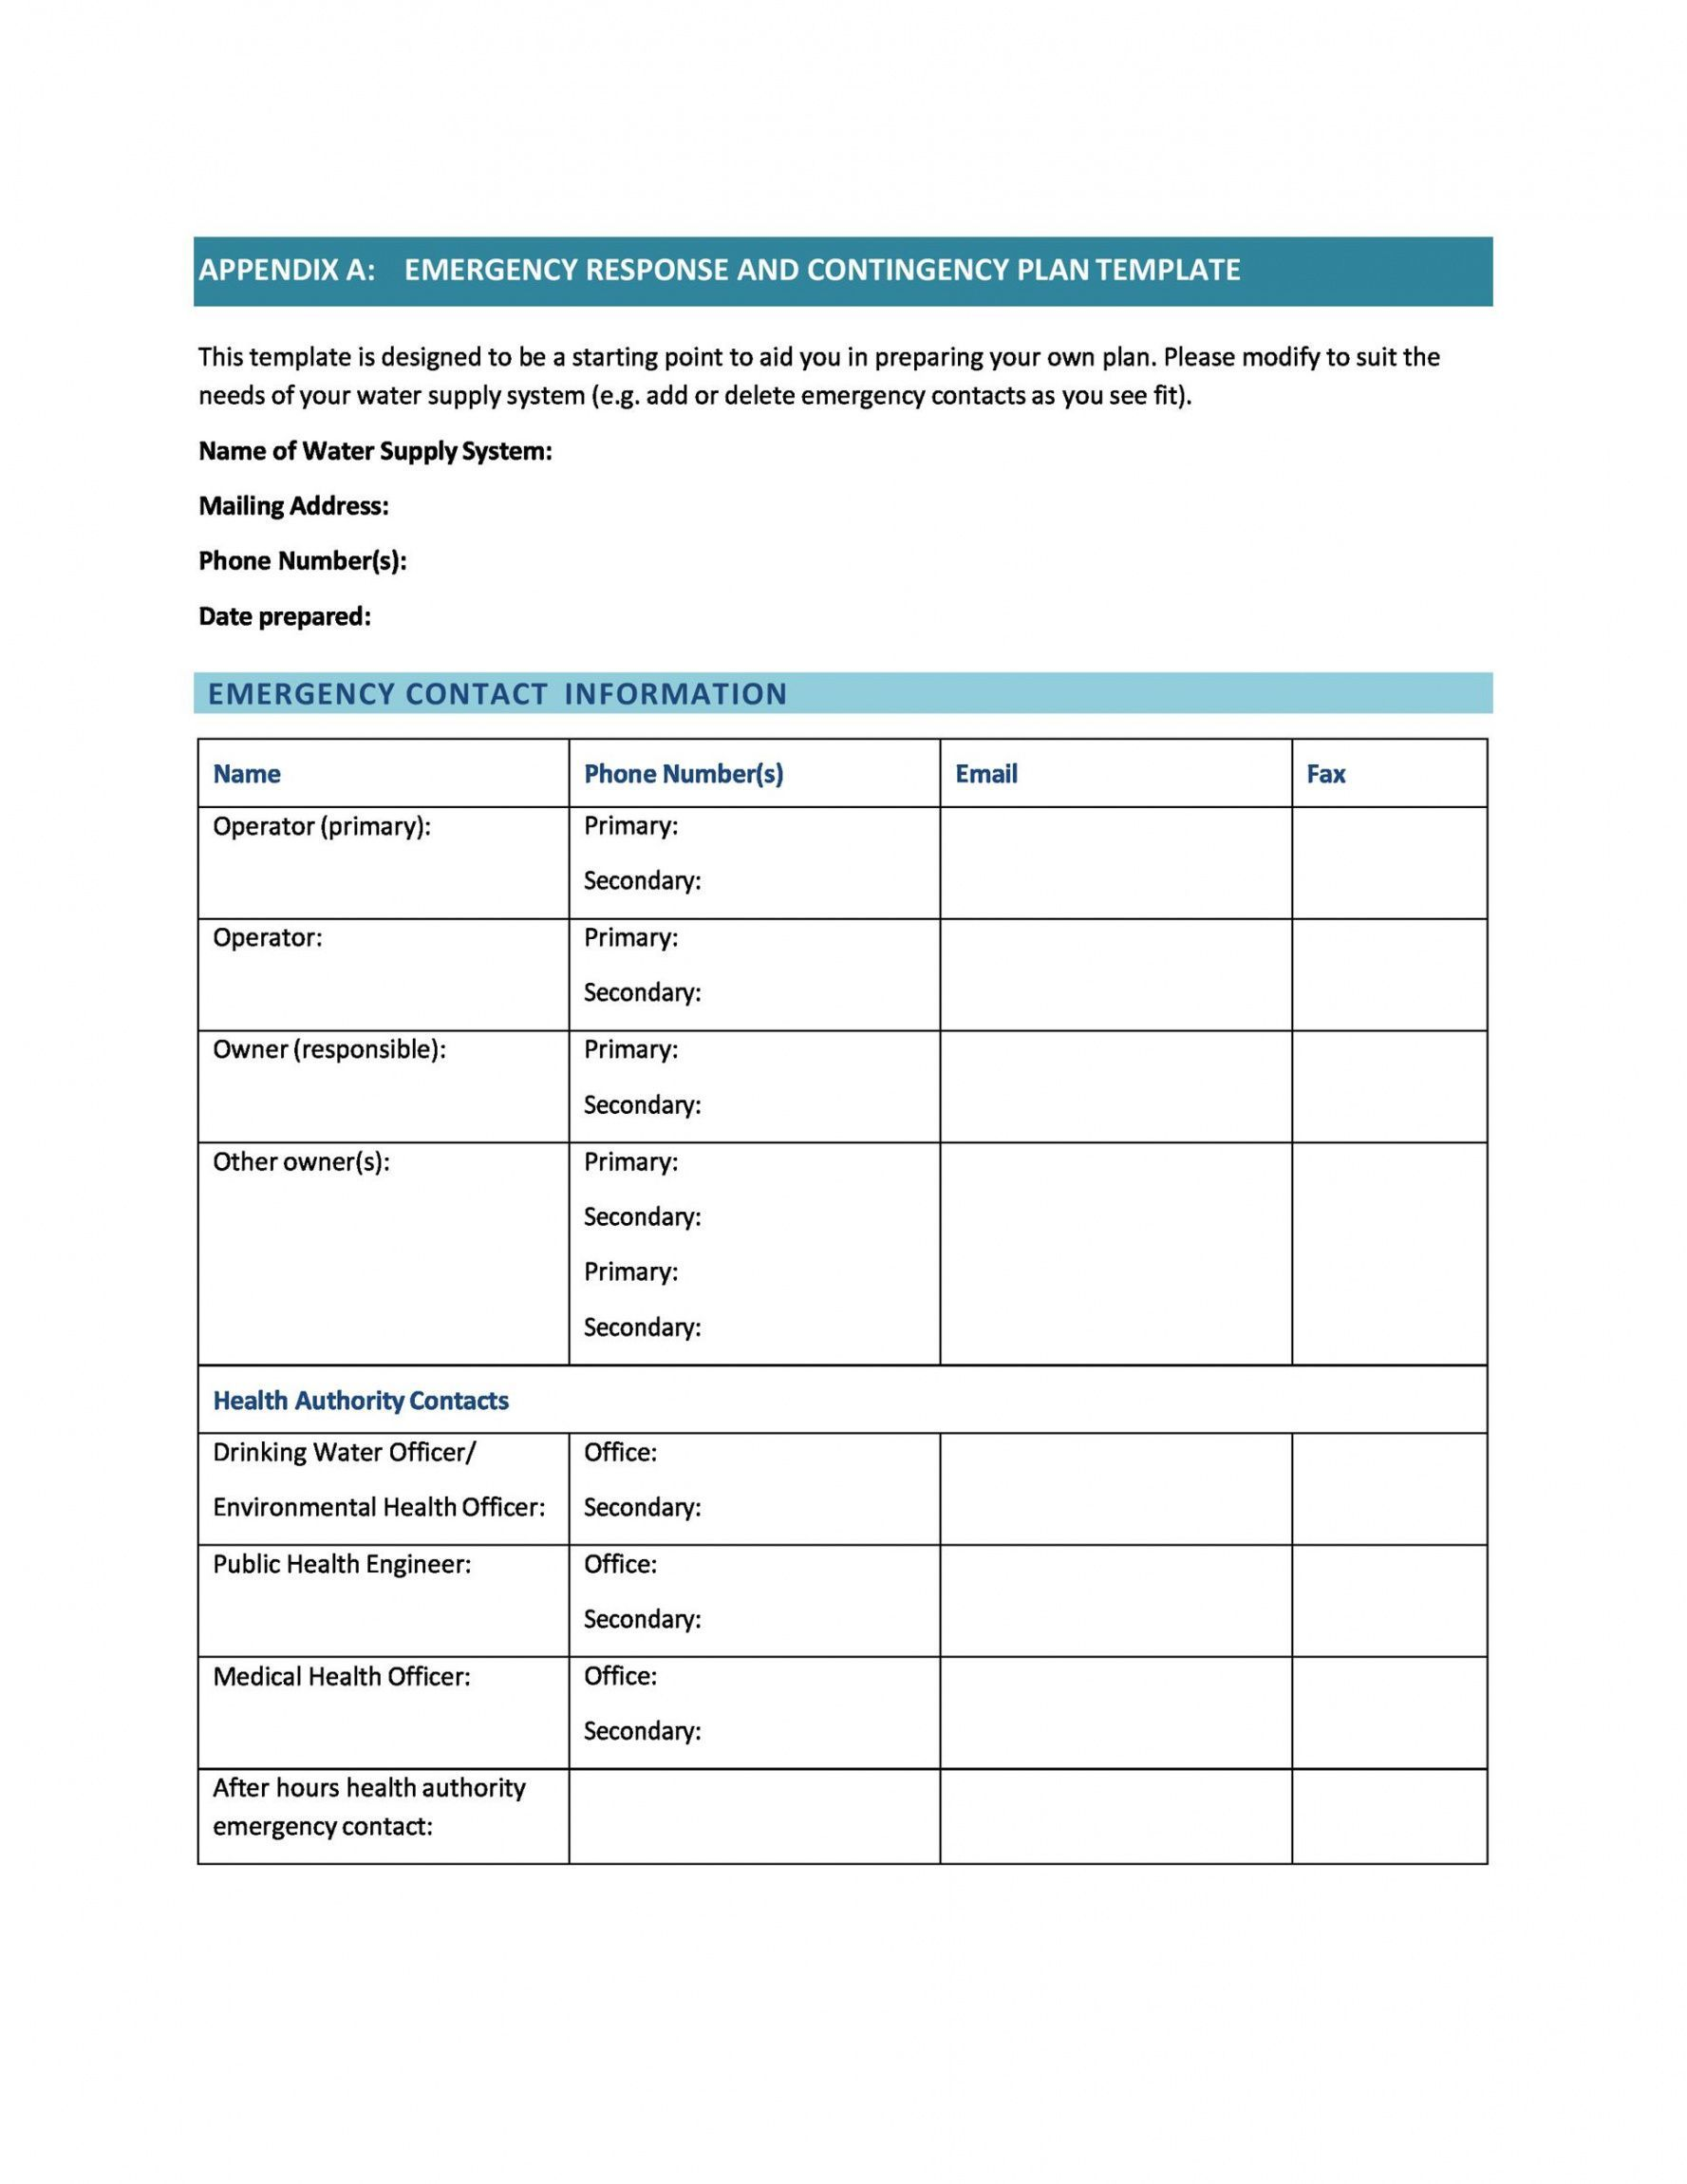 Browse Our Example Of Payroll Disaster Recovery Plan Template For Free Business Contingency Plan Family Emergency Plan Online Business Plan Template It disaster recovery plan template